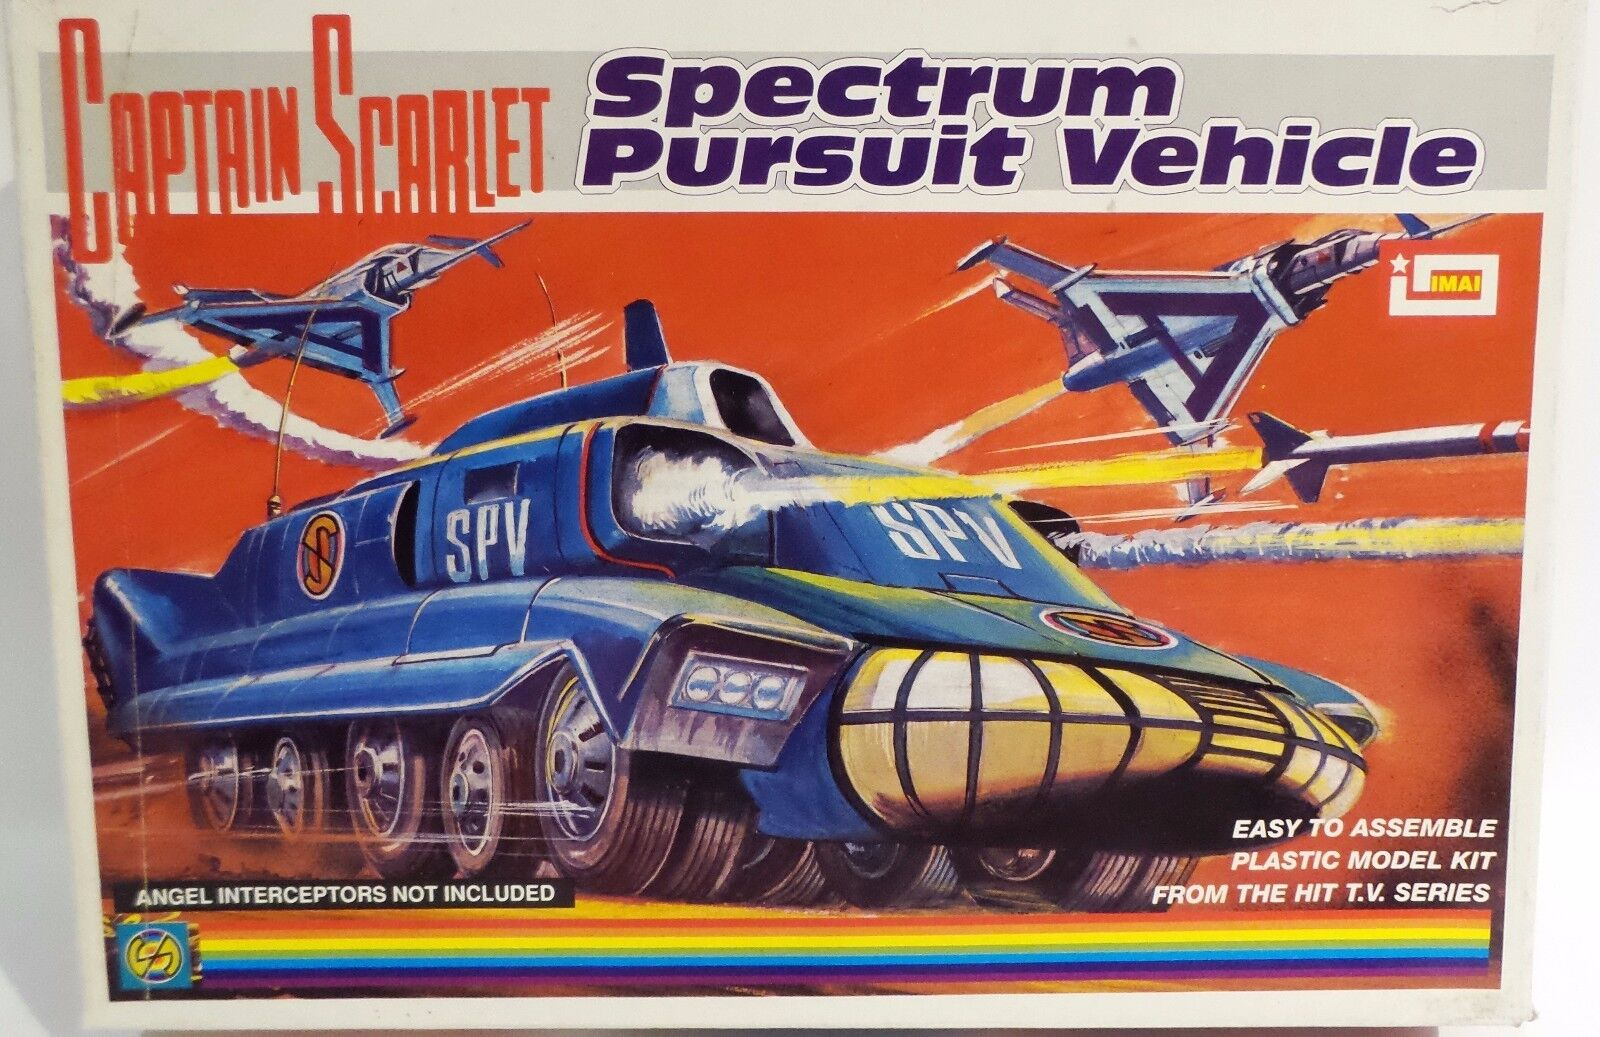 CAPTAIN SCARLET : SPECTRUM PURSUIT VEHICLE BOXED PLASTIC MODEL KIT MADE BY IMAI